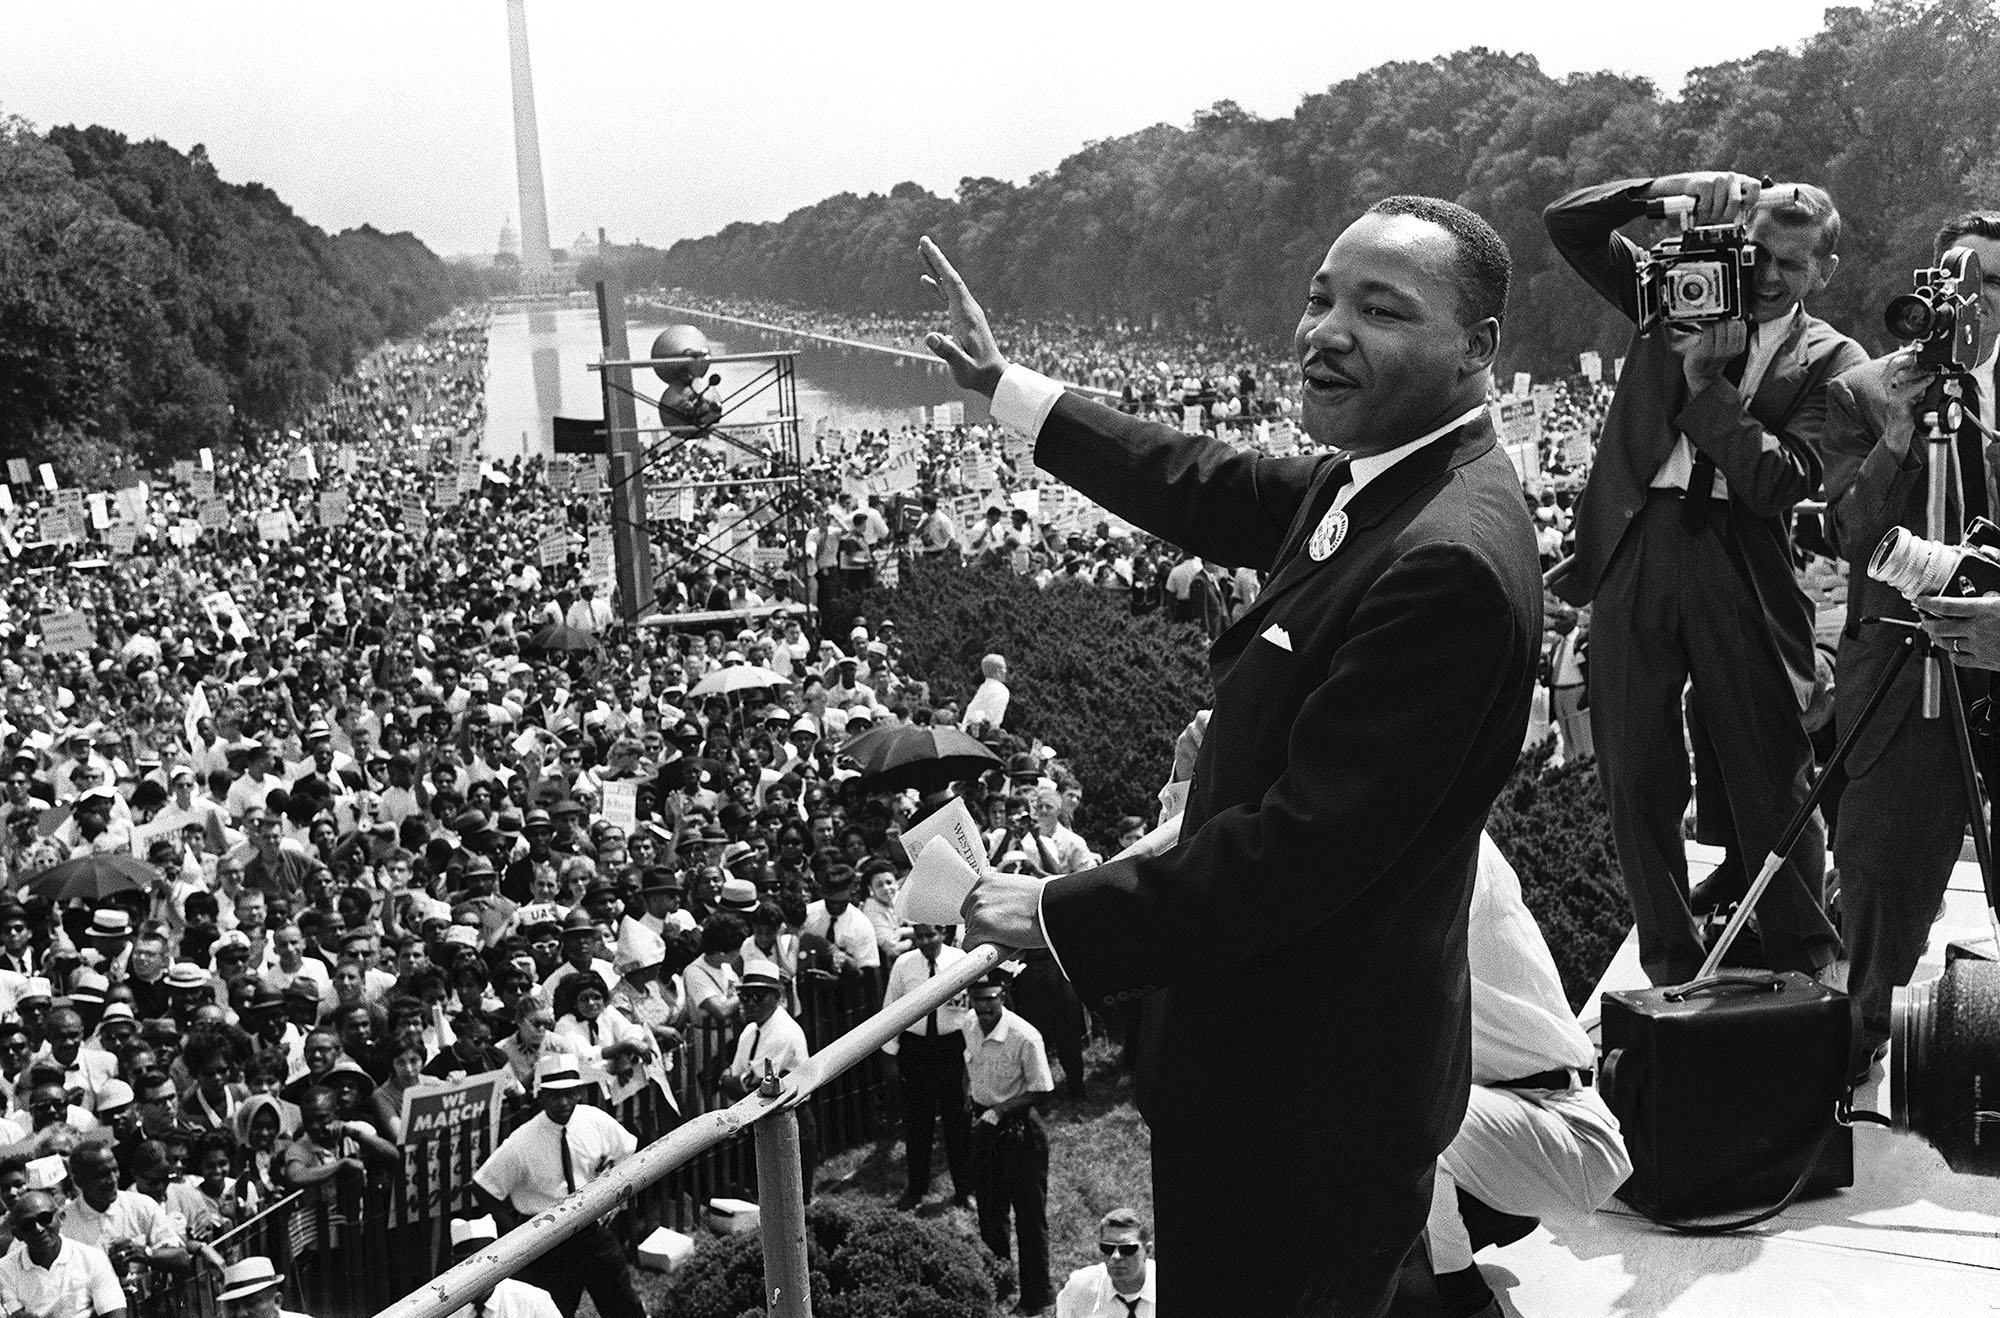 Remembering Dr King >> Remembering Martin Luther King Jr In Photos The Atlantic